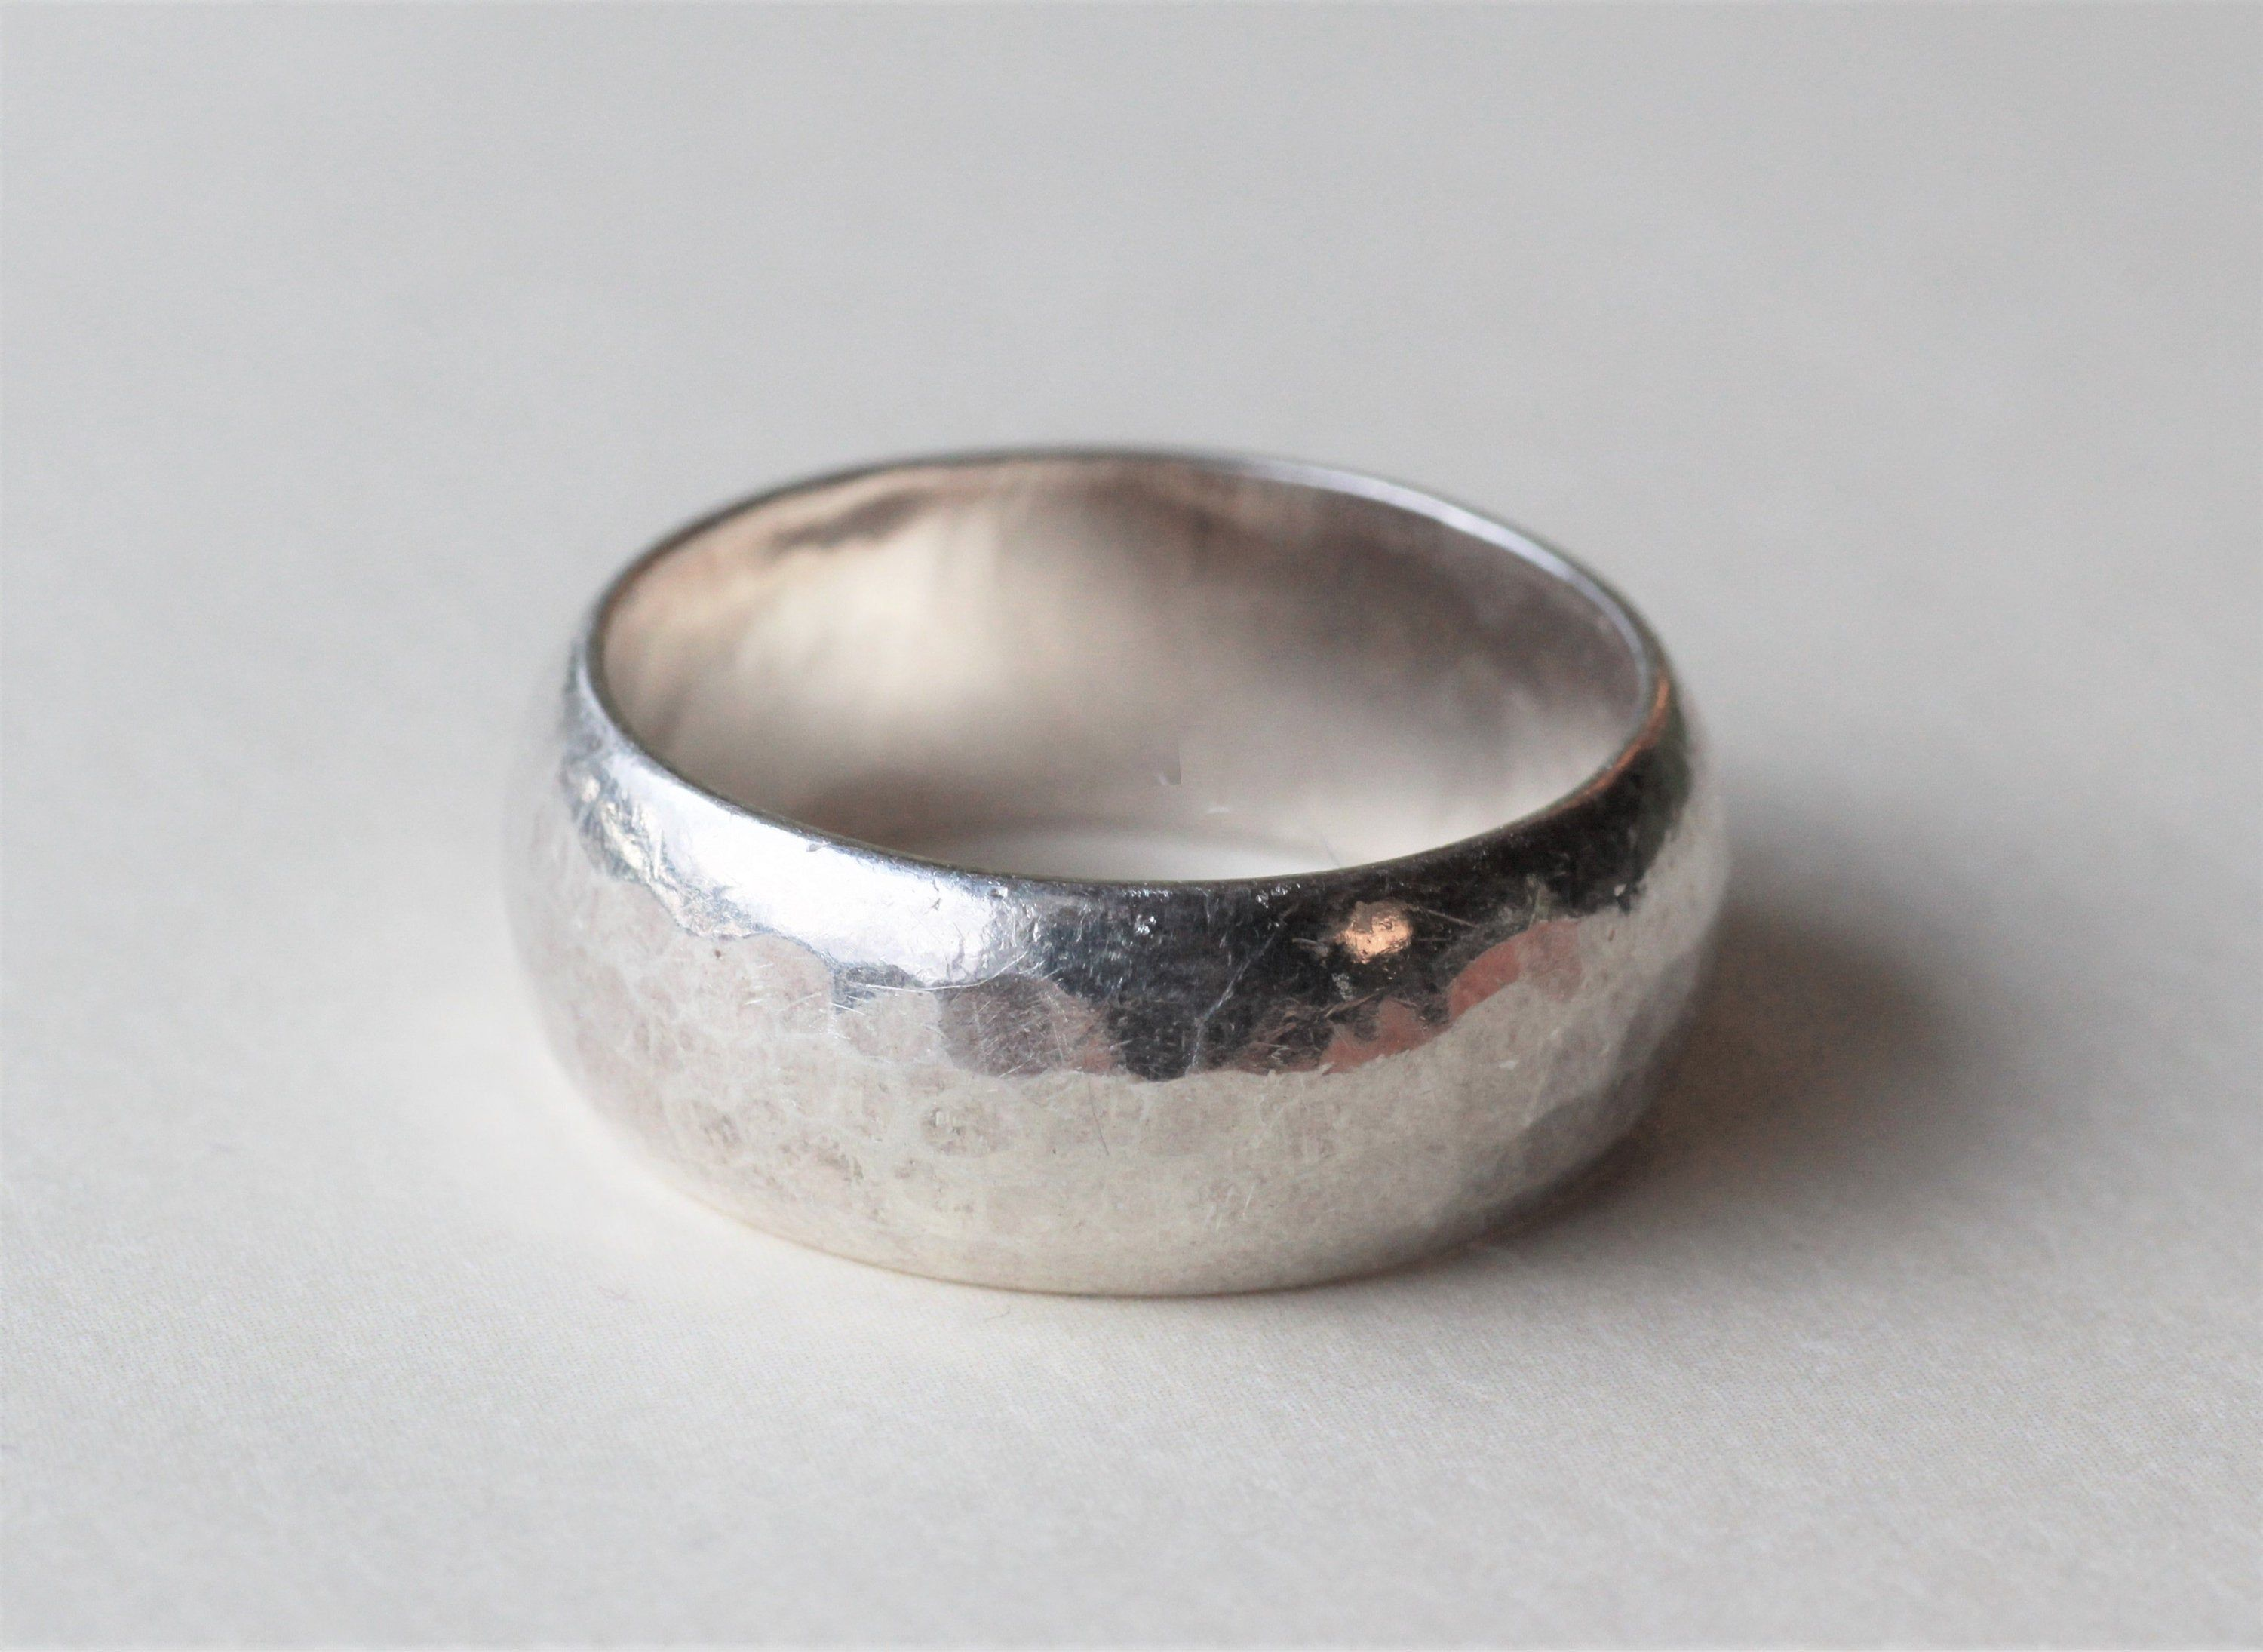 Juhls Silver Gallery Kautokeino Norway Vintage Modernist Etsy In 2020 Hammered Band Ring Silver Hammered Band